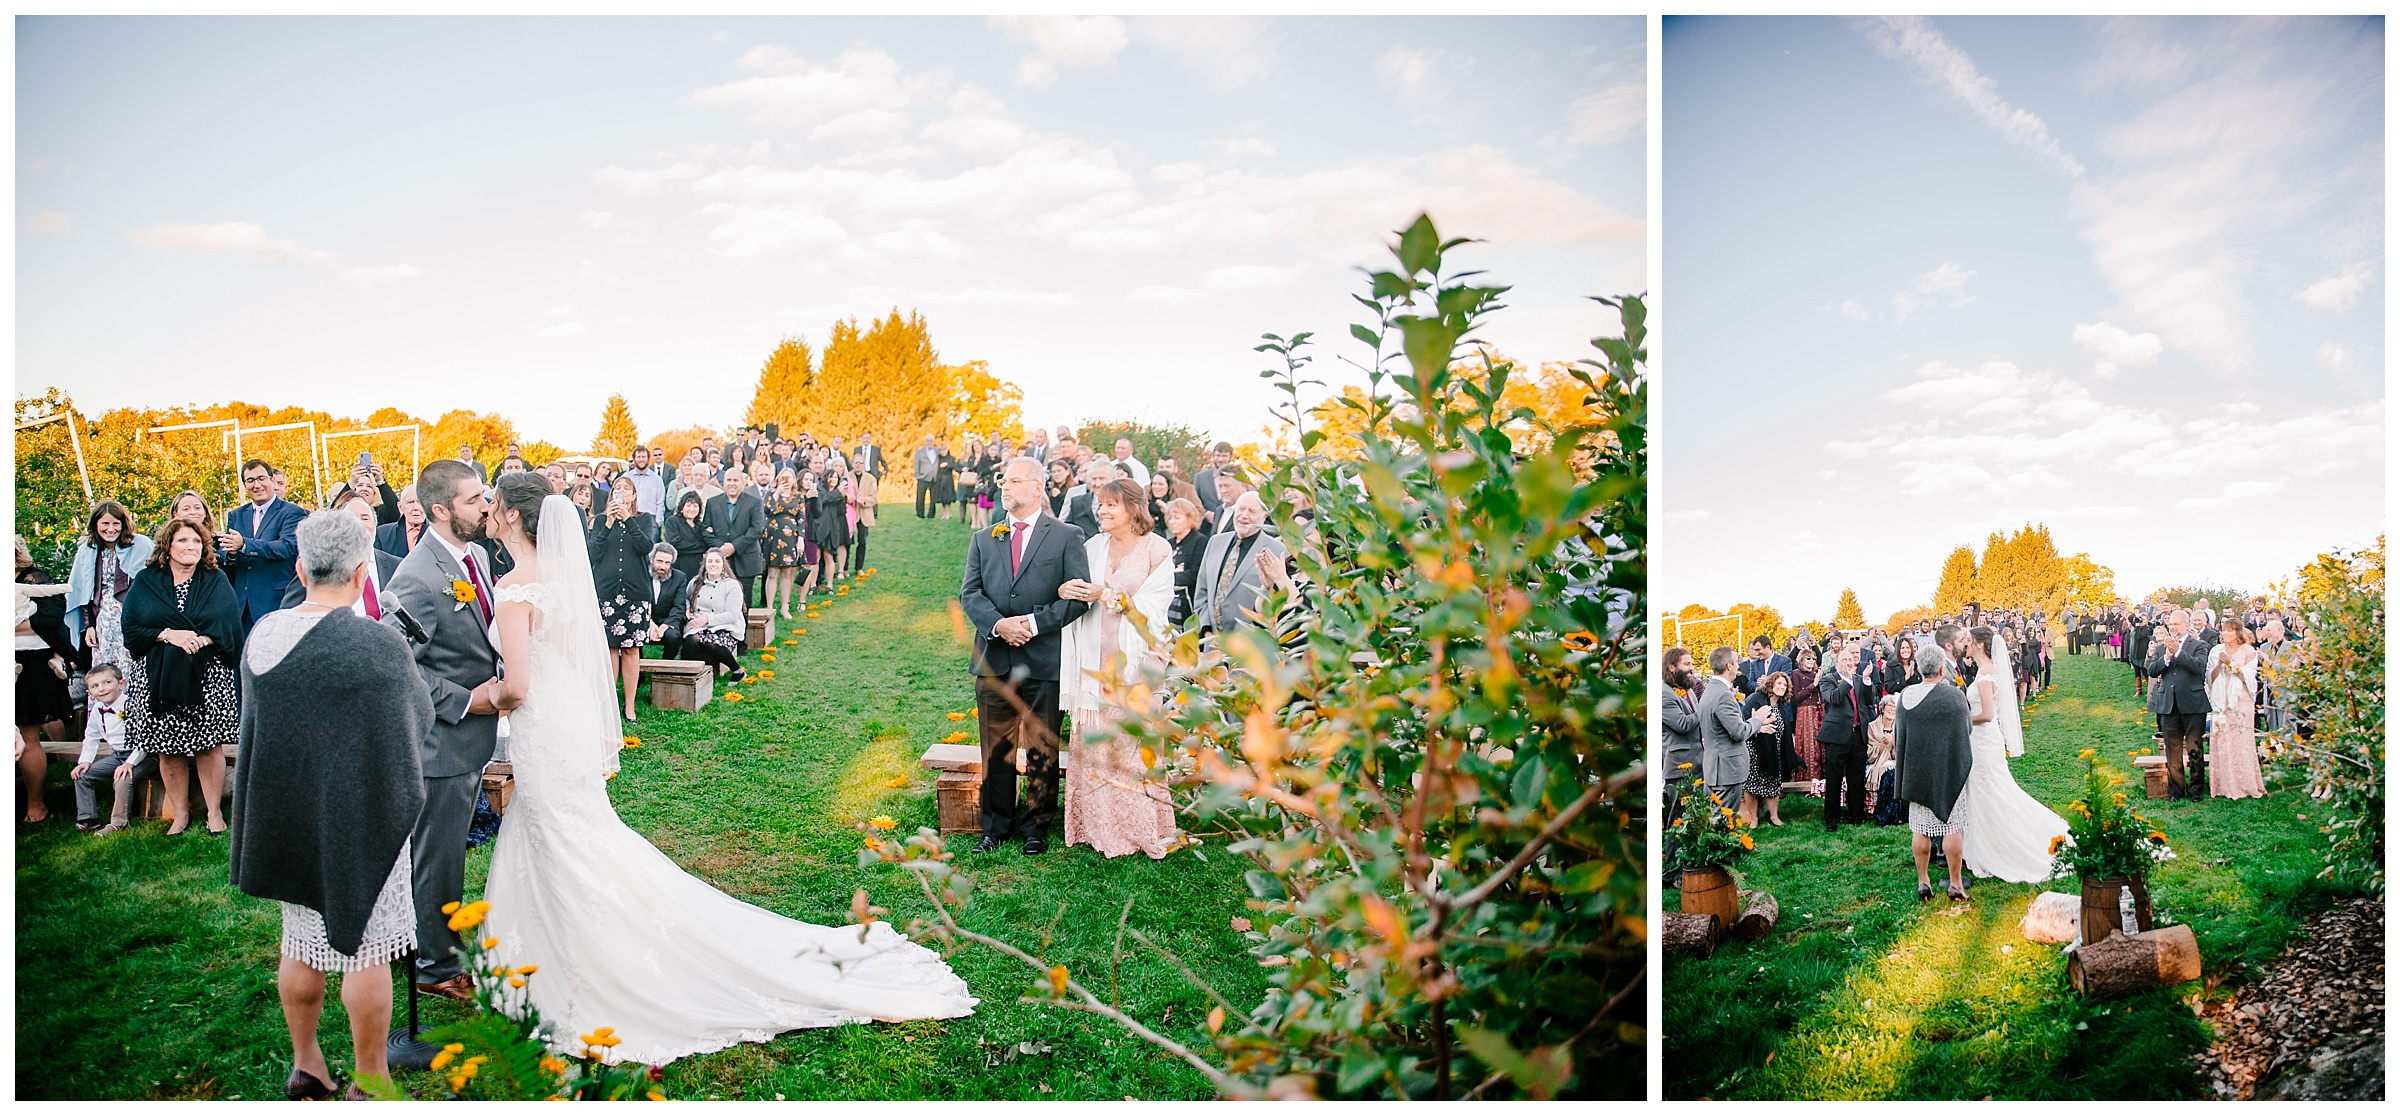 #amatomymindinlove,Angela Bianchini,Angela-Eric_Amato-Wedding,Artistic,Autumn,BLM,Candid,Creative,Eric Amato,Fall,Fall Wedding,Farm Wedding,MA,MA Wedding,MA Wedding Photographer,Massachusettes,Massachusettes Wedding Photographer,Natural,New England,New England Wedding,Oct,October,Phillipston,Phillipston Wedding Photographer,Photo,Photographer,Photography,Photojournalistic,Professional,Professional Wedding Photography,Red Apple Farm,Vivid,Wedding,Wedding Photography,Wedding Photography Packages,www.blmphoto.com,©BLM Photography 2018,